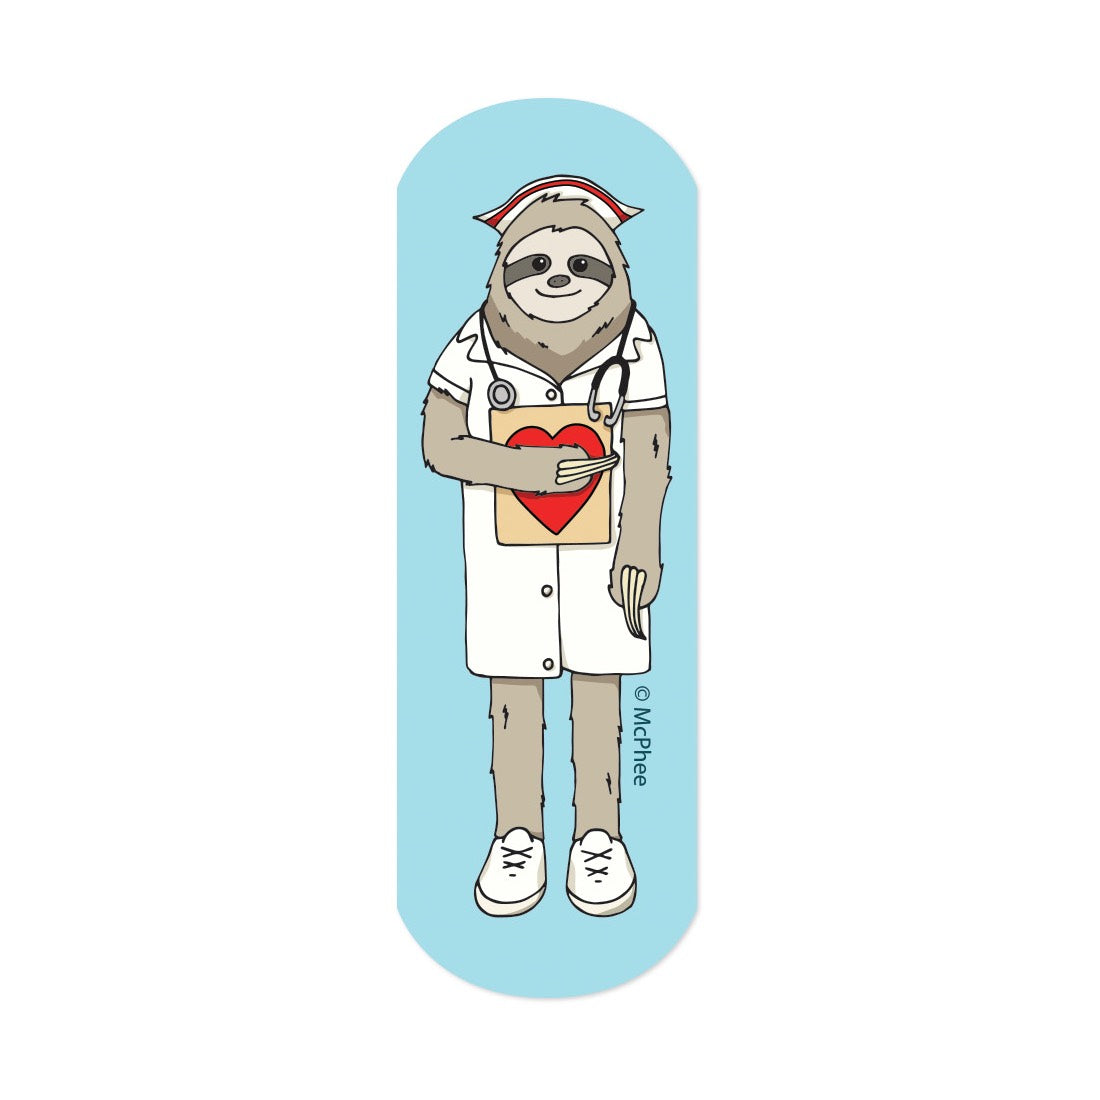 Sloth Nurse Bandages